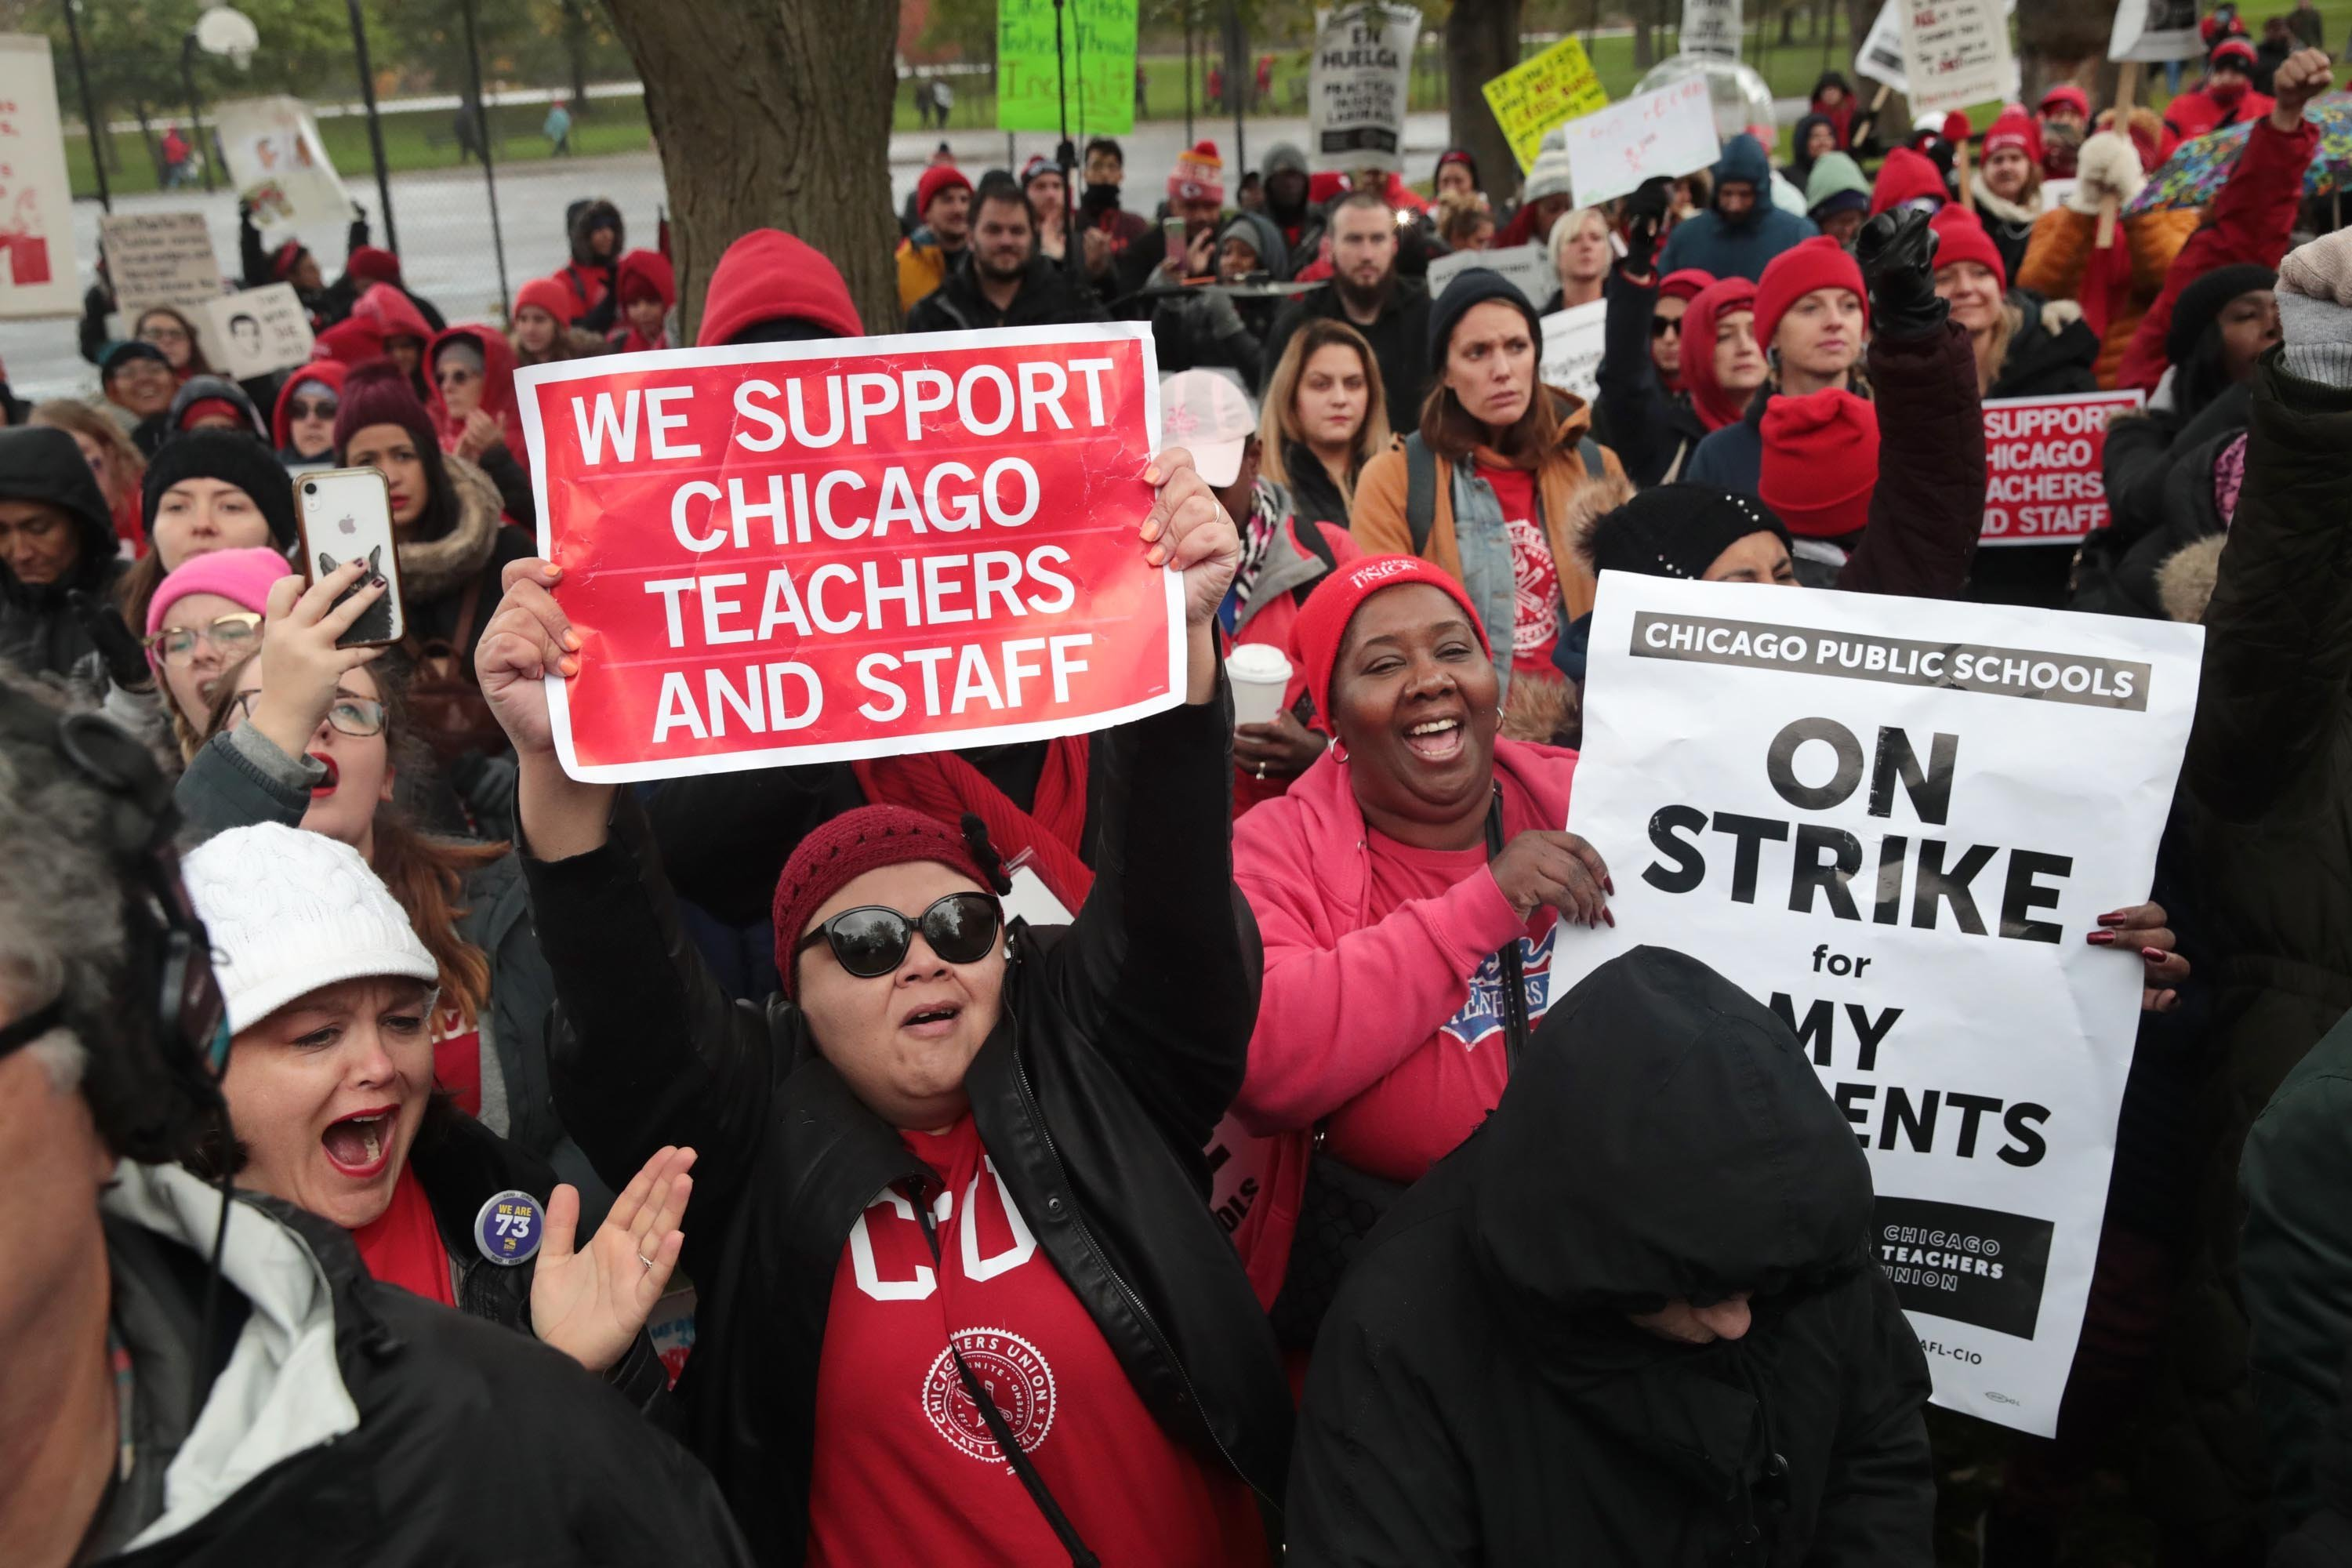 Chicago teachers vote to accept a tentative agreement after 11-day strike